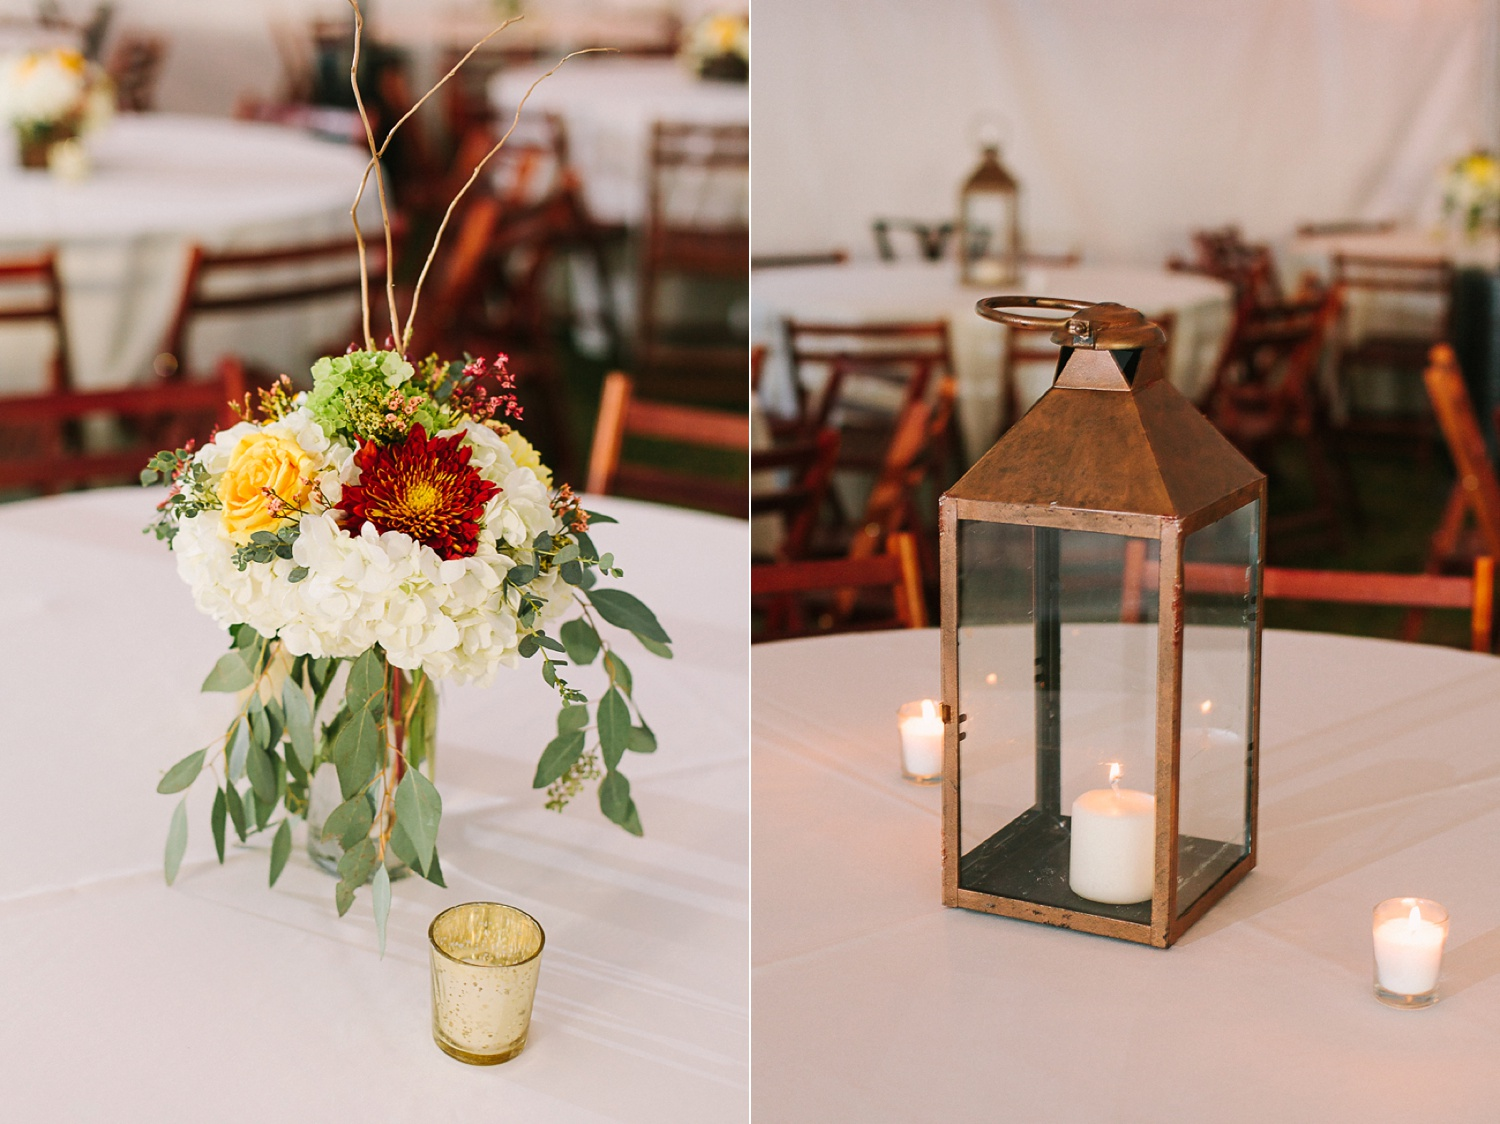 Lindsey_A_Miller_photography_charleston_mcleod_plantation_wedding_row_of_oaks_southern_classic_fall_spanish_moss_historic_home_070.jpg